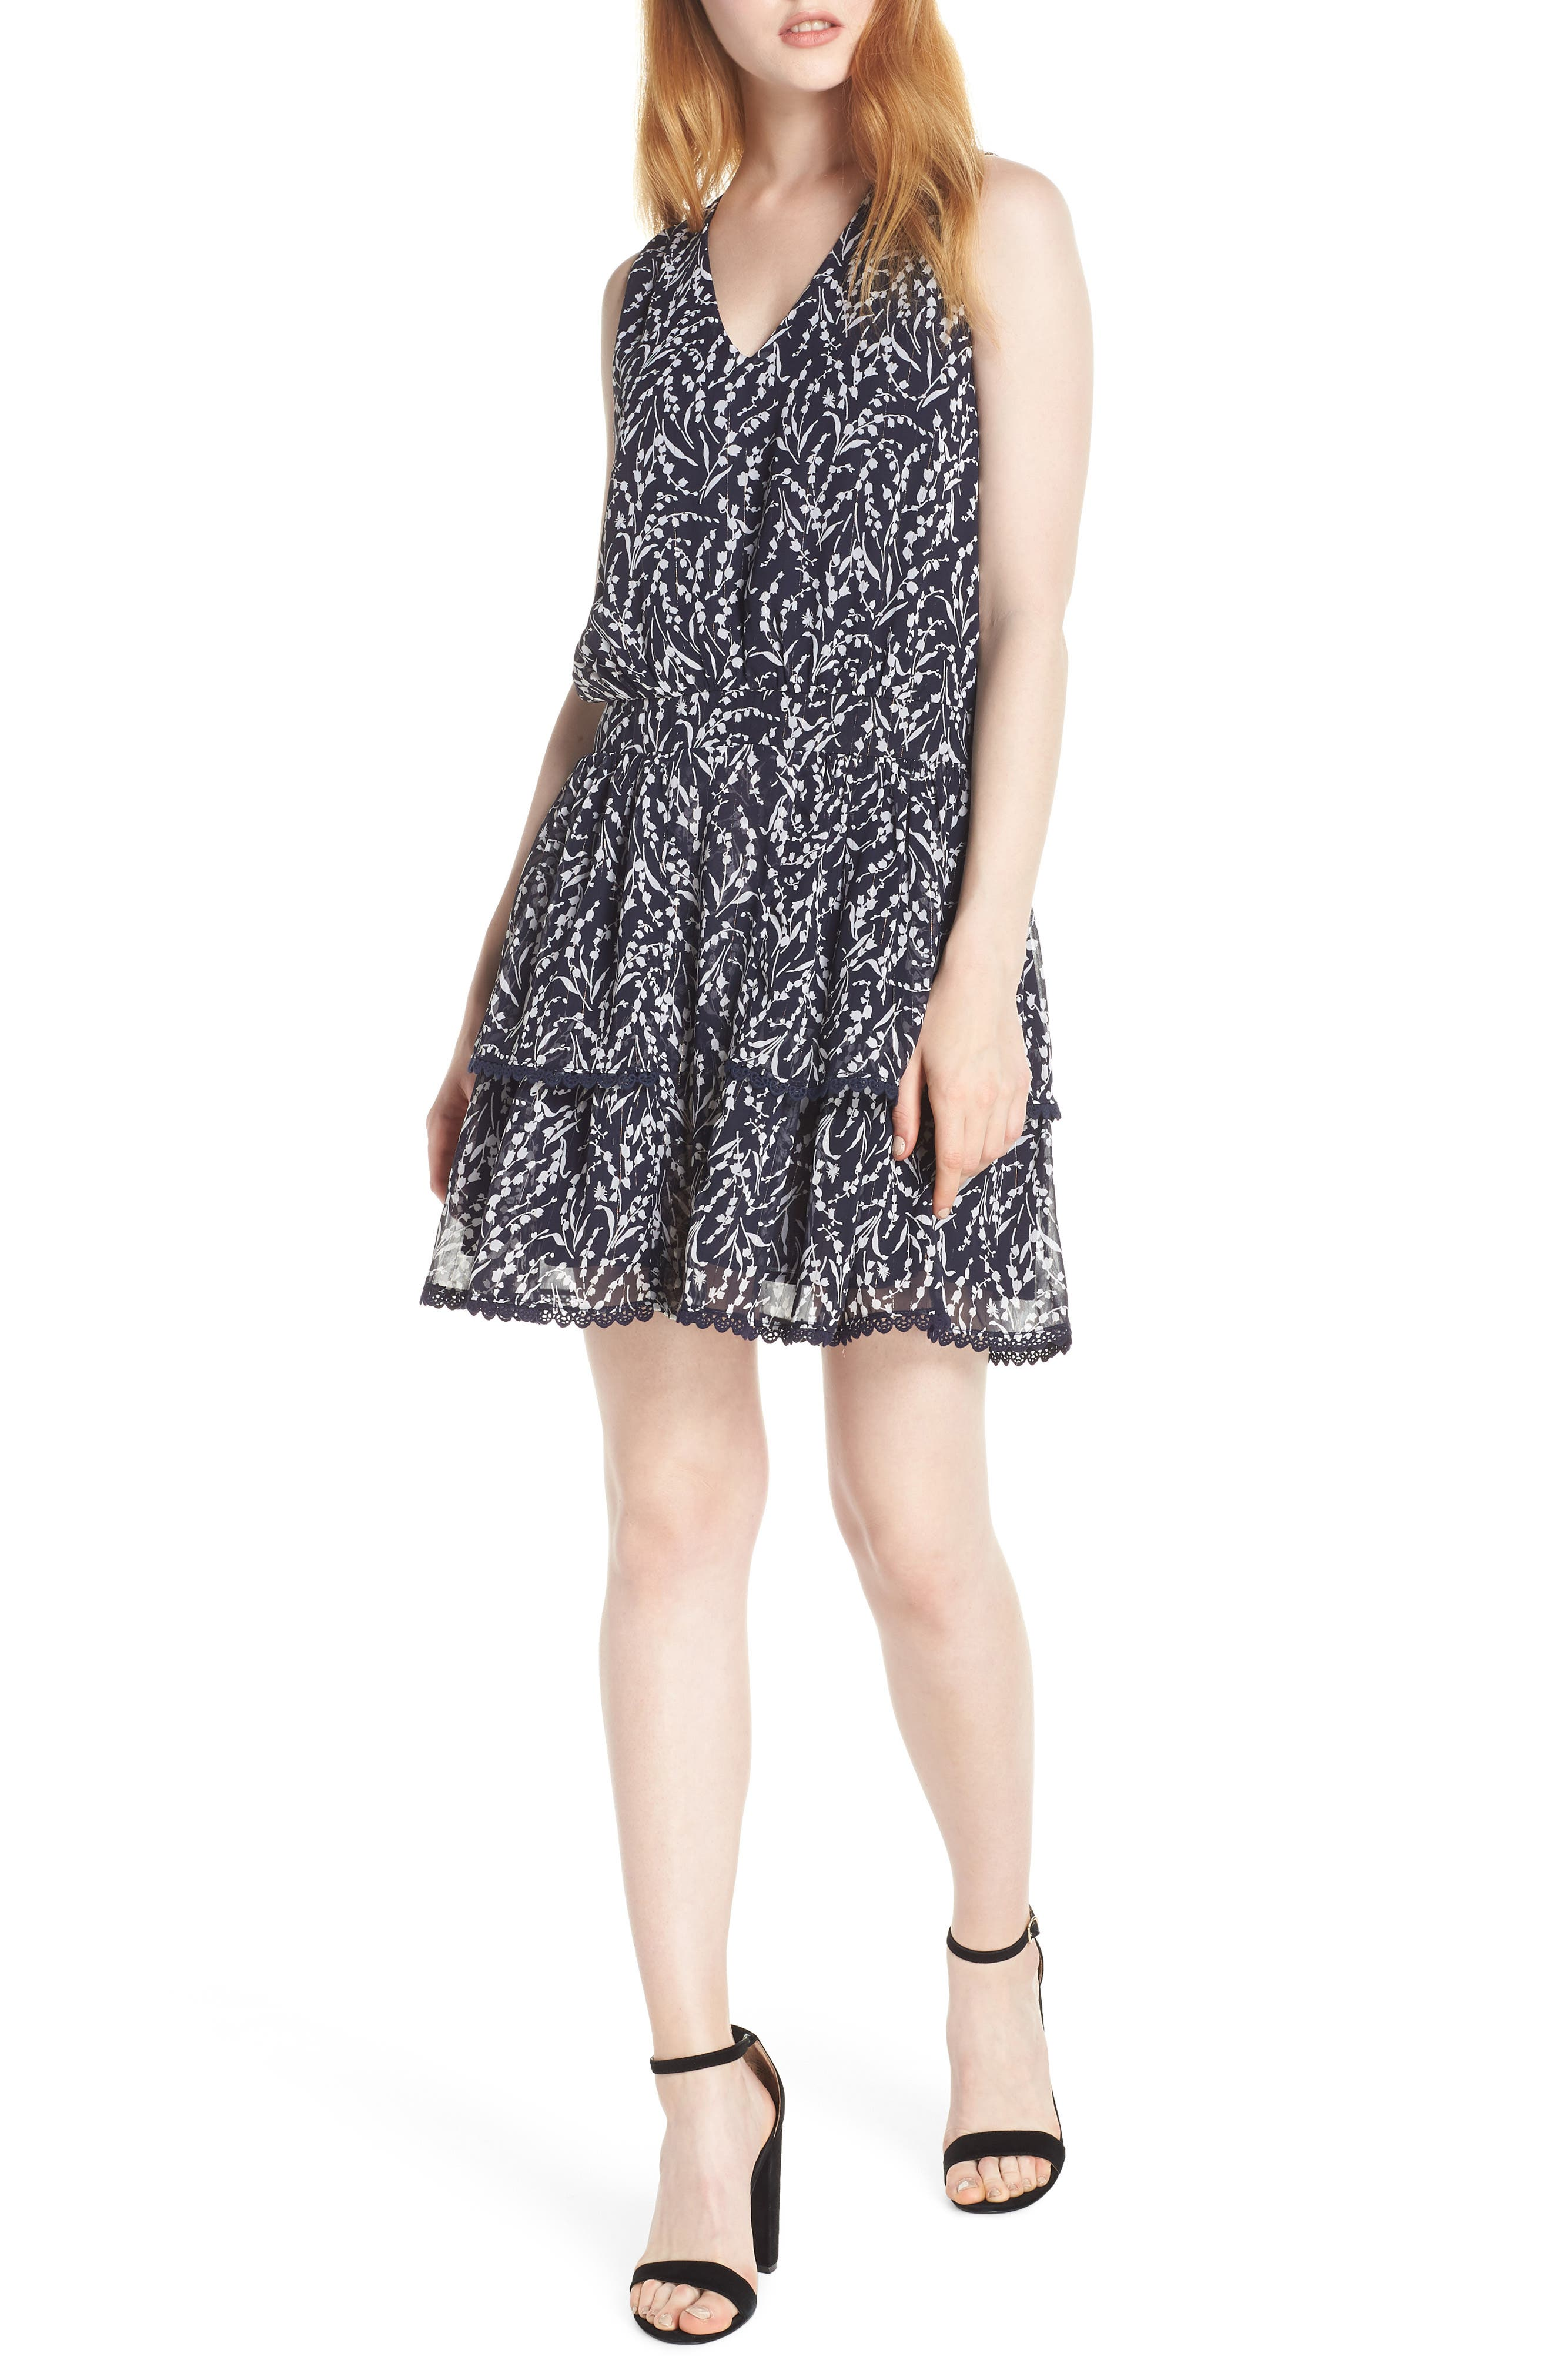 19 COOPER Tiered Floral Sleeveless Dress, Main, color, NAVY/ WHITE